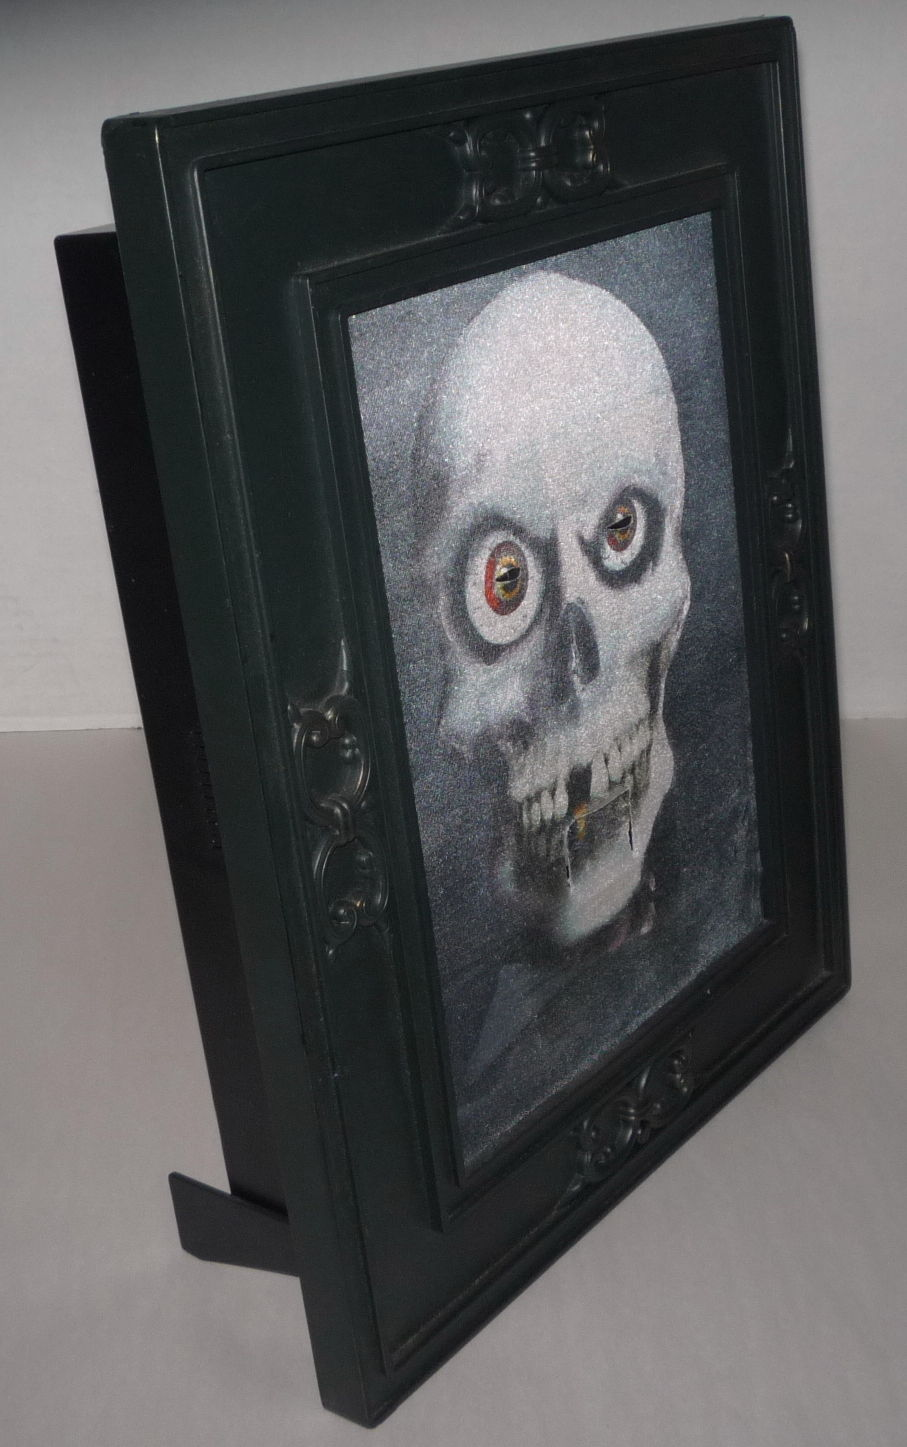 Image rare gemmy pirate skull talking animated 3 d halloween 15 rare gemmy pirate skull talking animated 3 d halloween 15 x 12 picture frame 3g jeuxipadfo Gallery